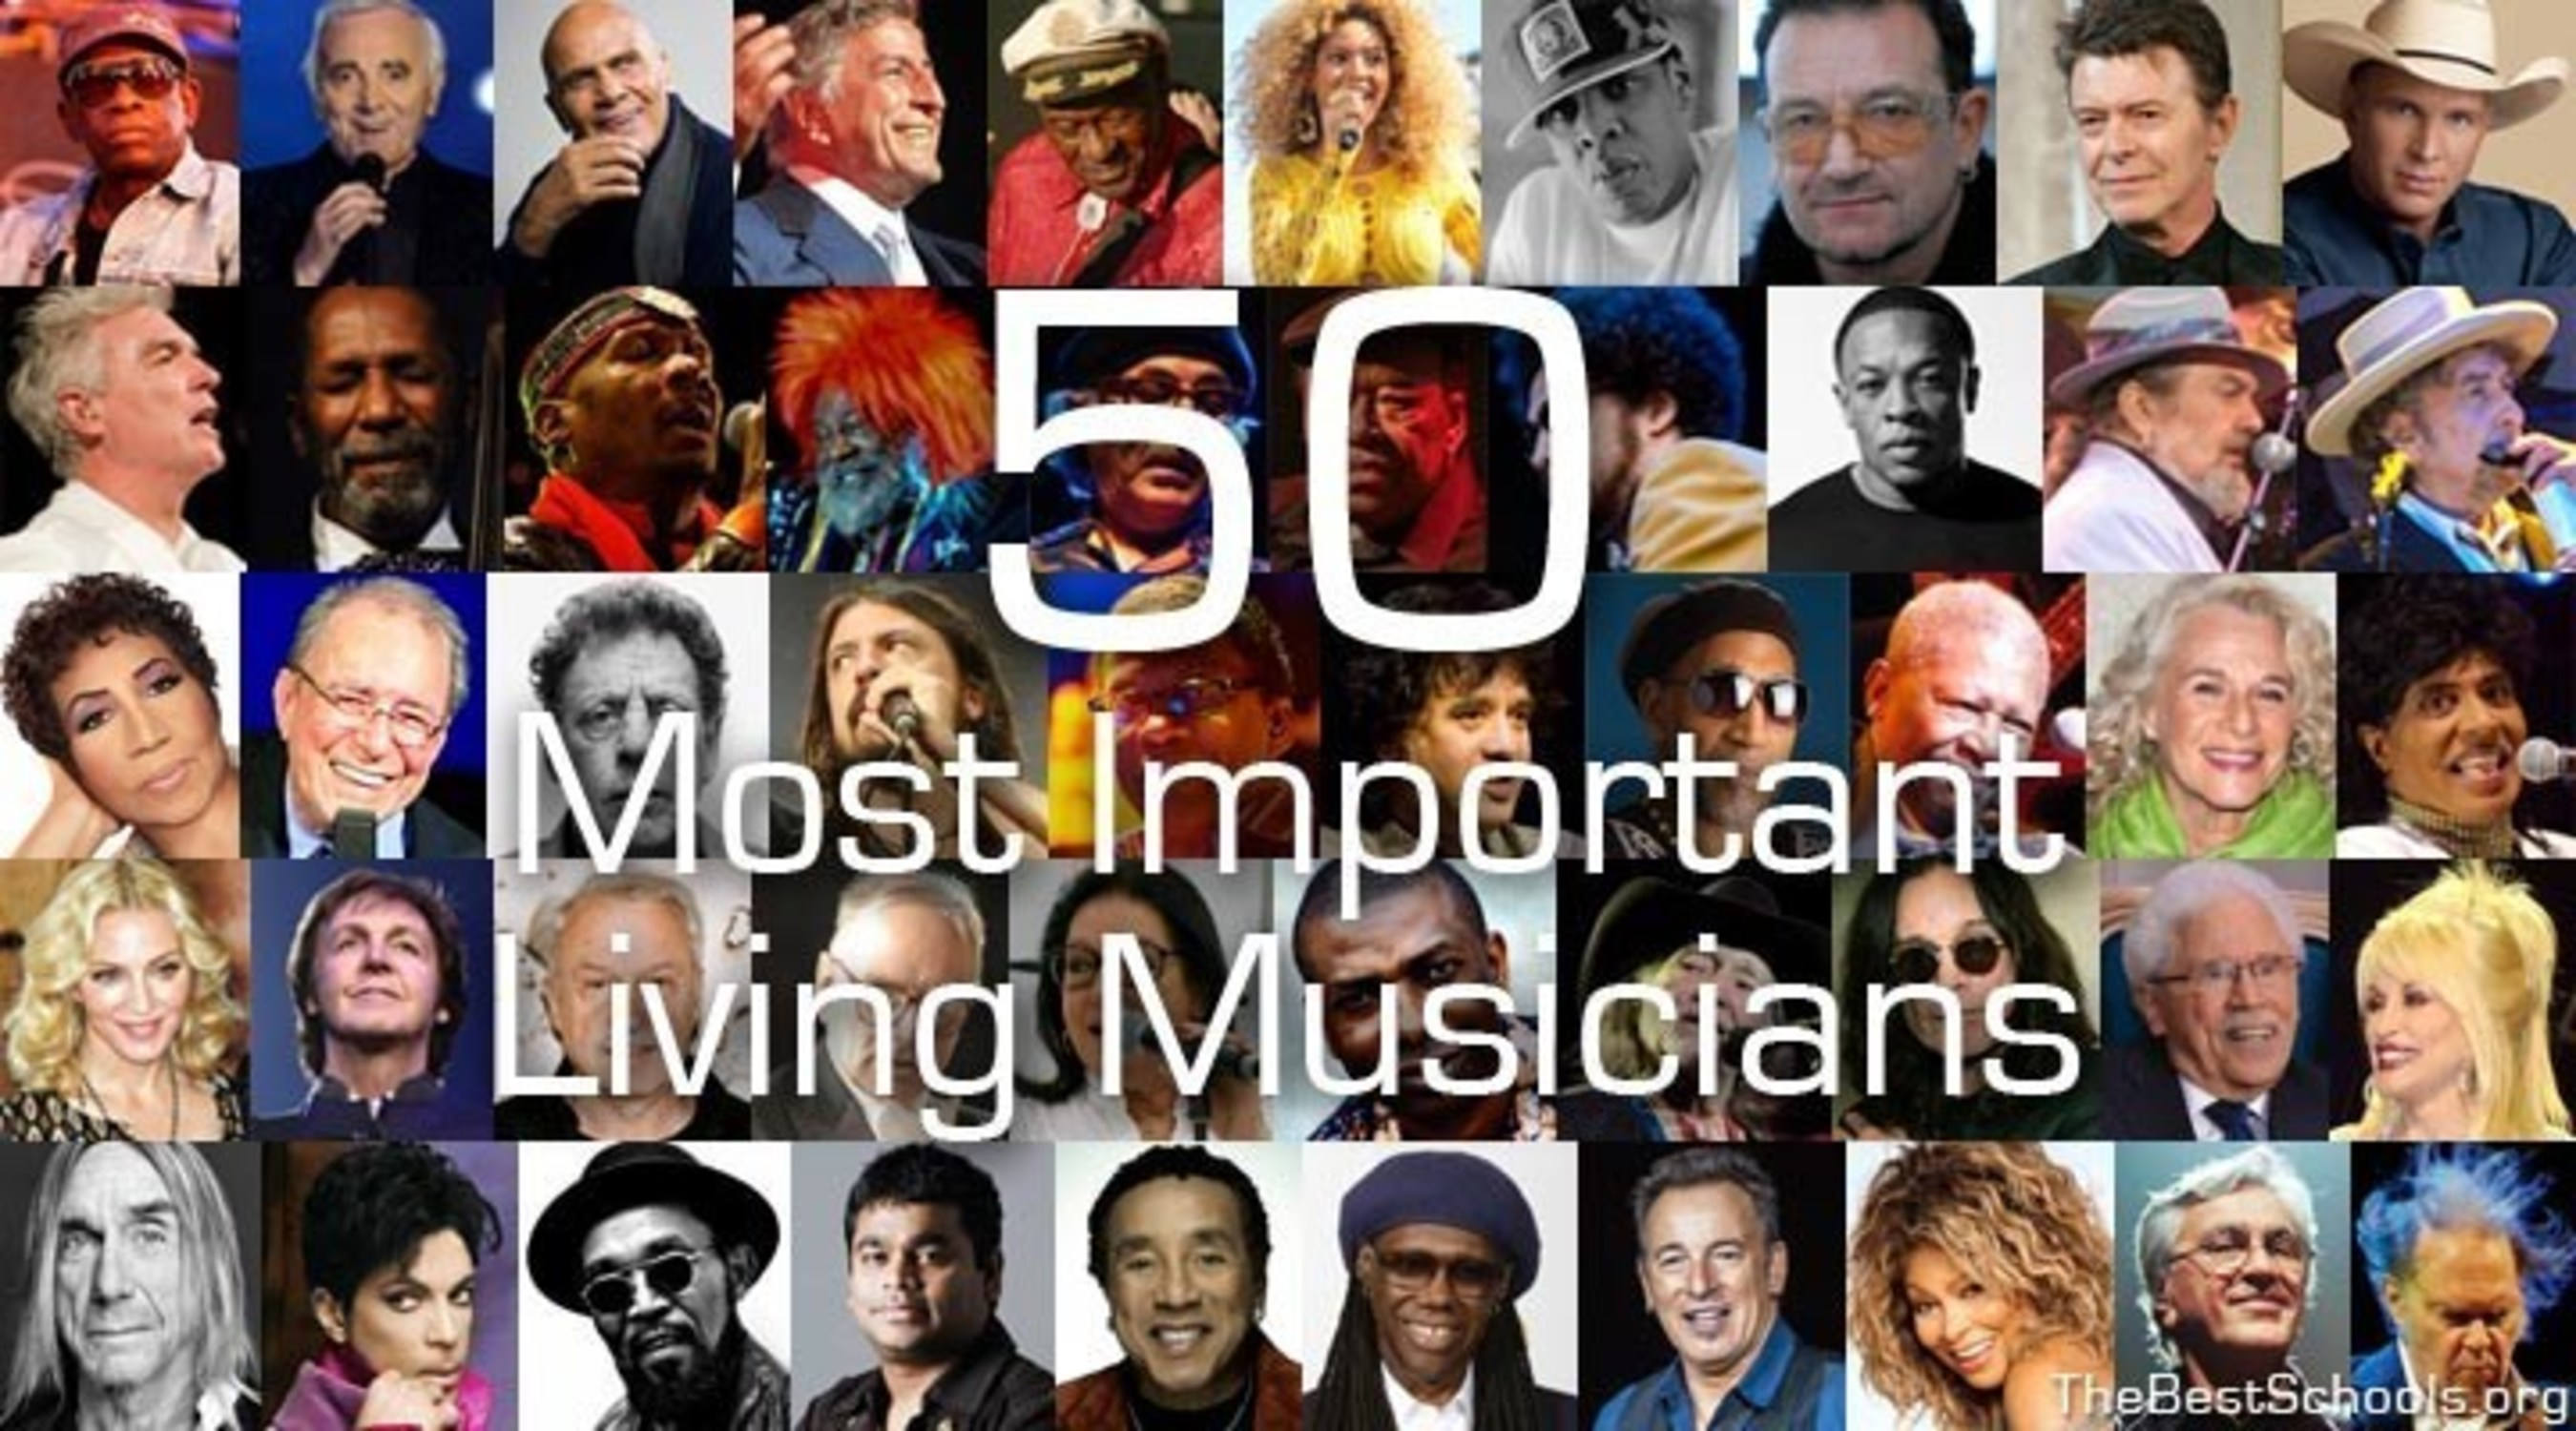 TheBestSchools.org Announces Publication of 'The 50 Most Important Living Musicians'